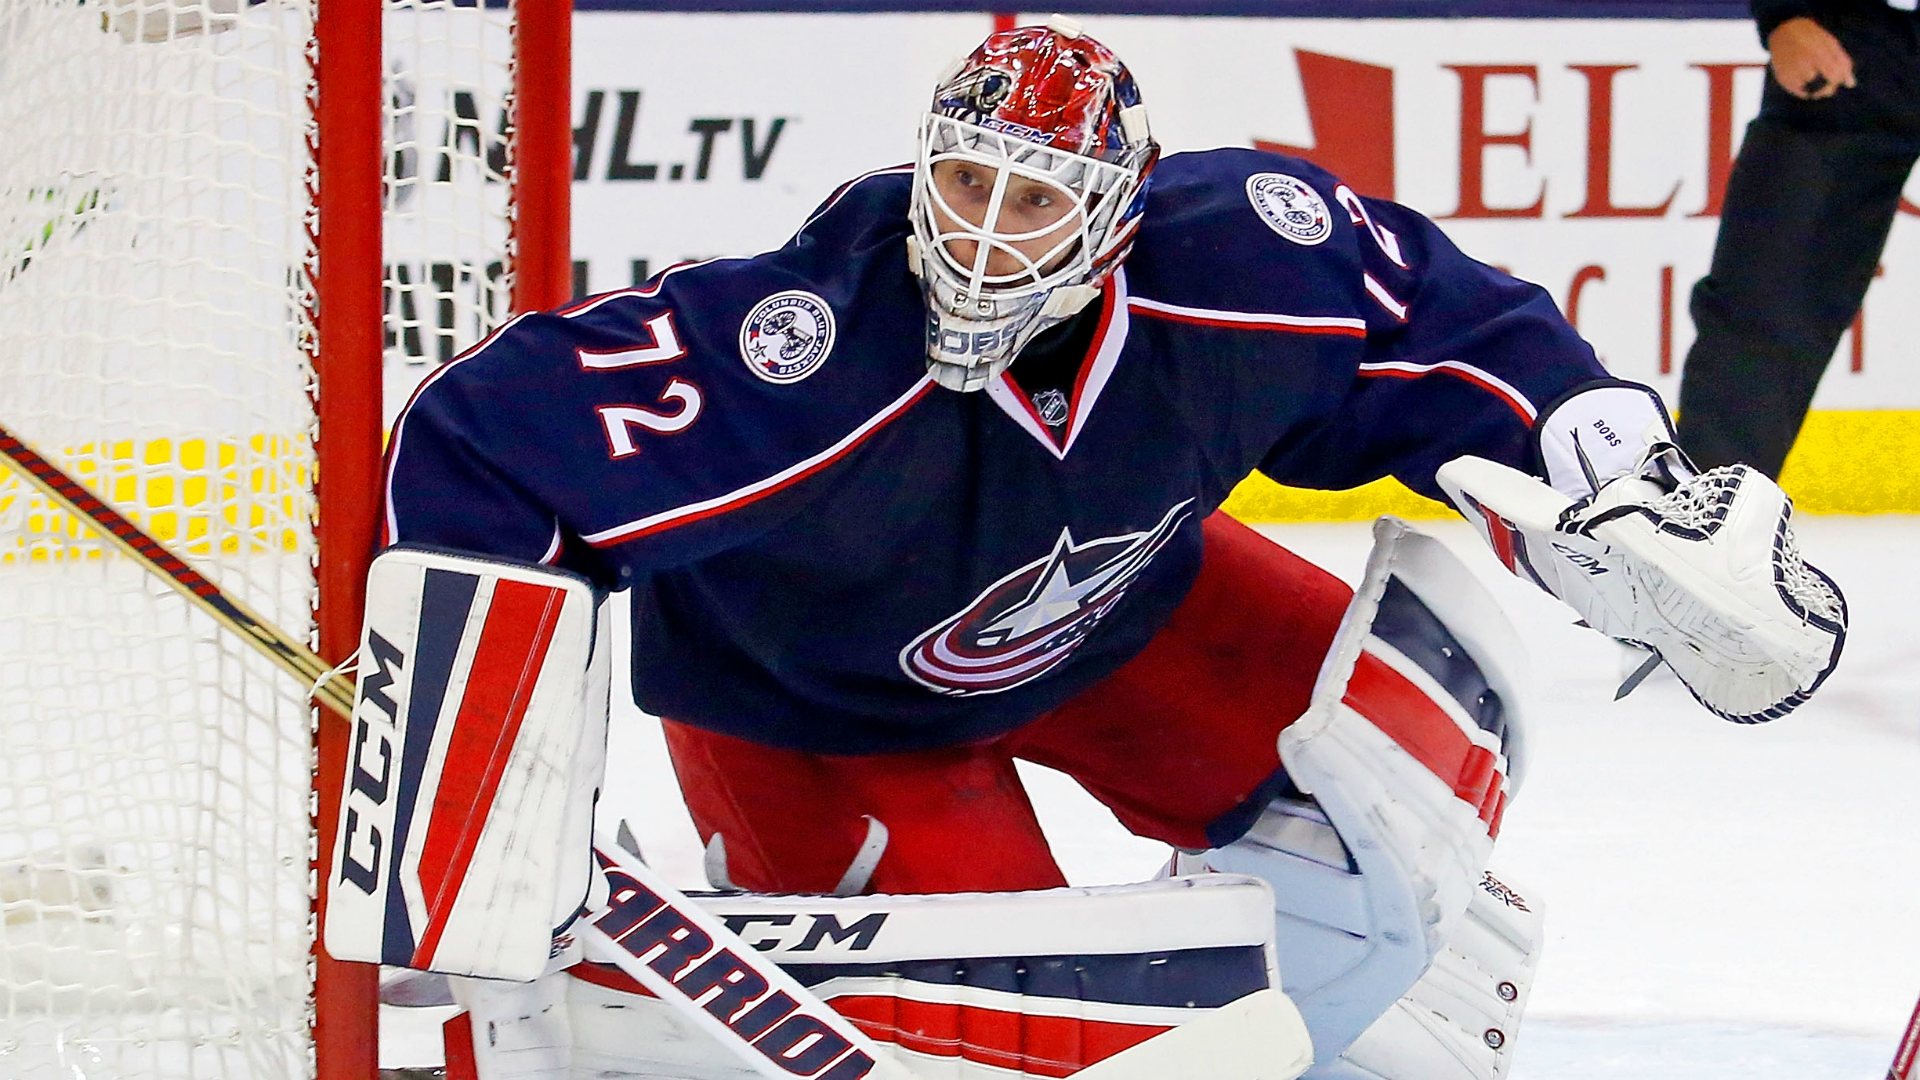 Blue Jackets' Sergei Bobrovsky to miss game after unknown 'incident'